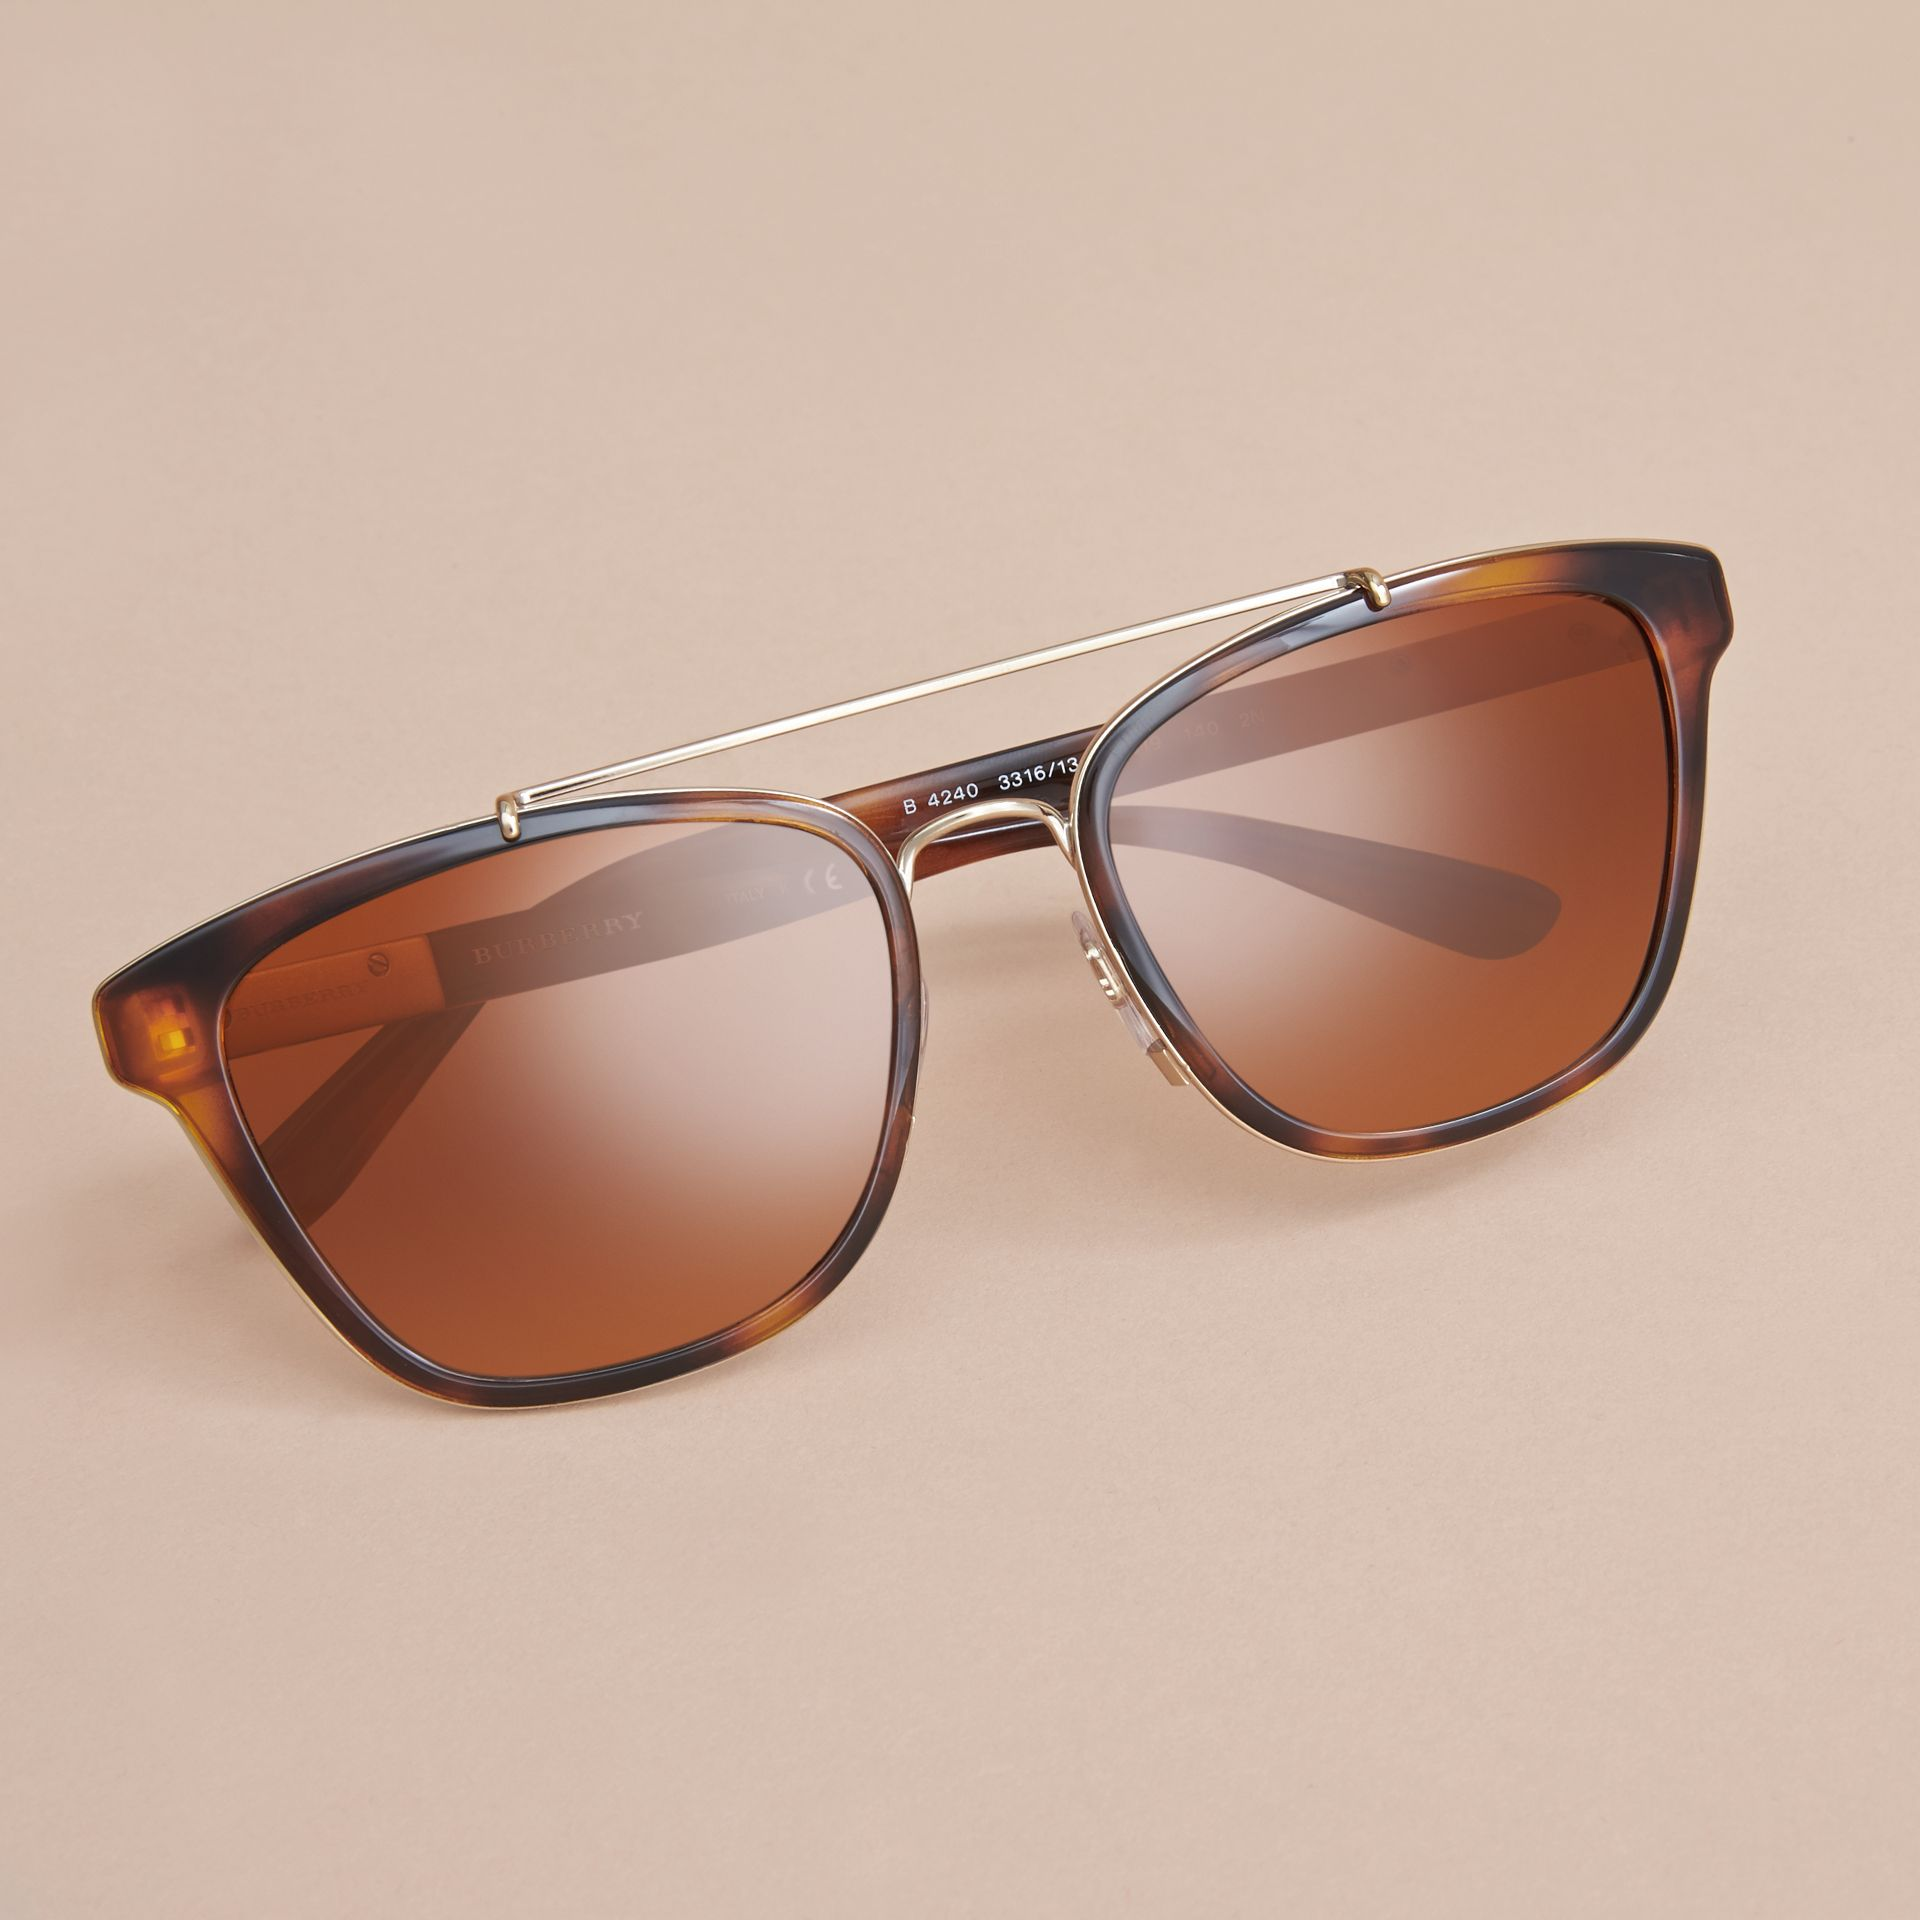 Top Bar Square Frame Sunglasses in Tortoiseshell - gallery image 3